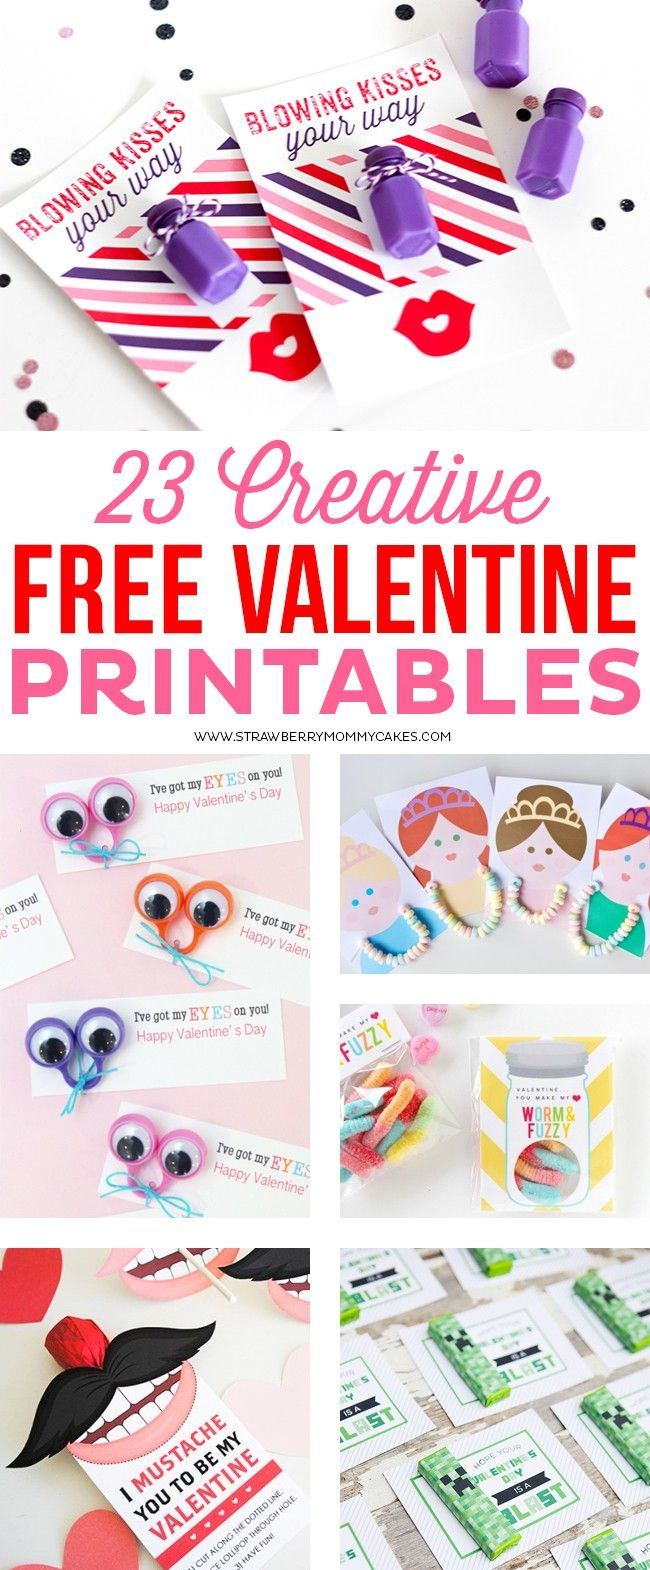 17 Best images about Creative Valentines – Creative Valentine Cards for School